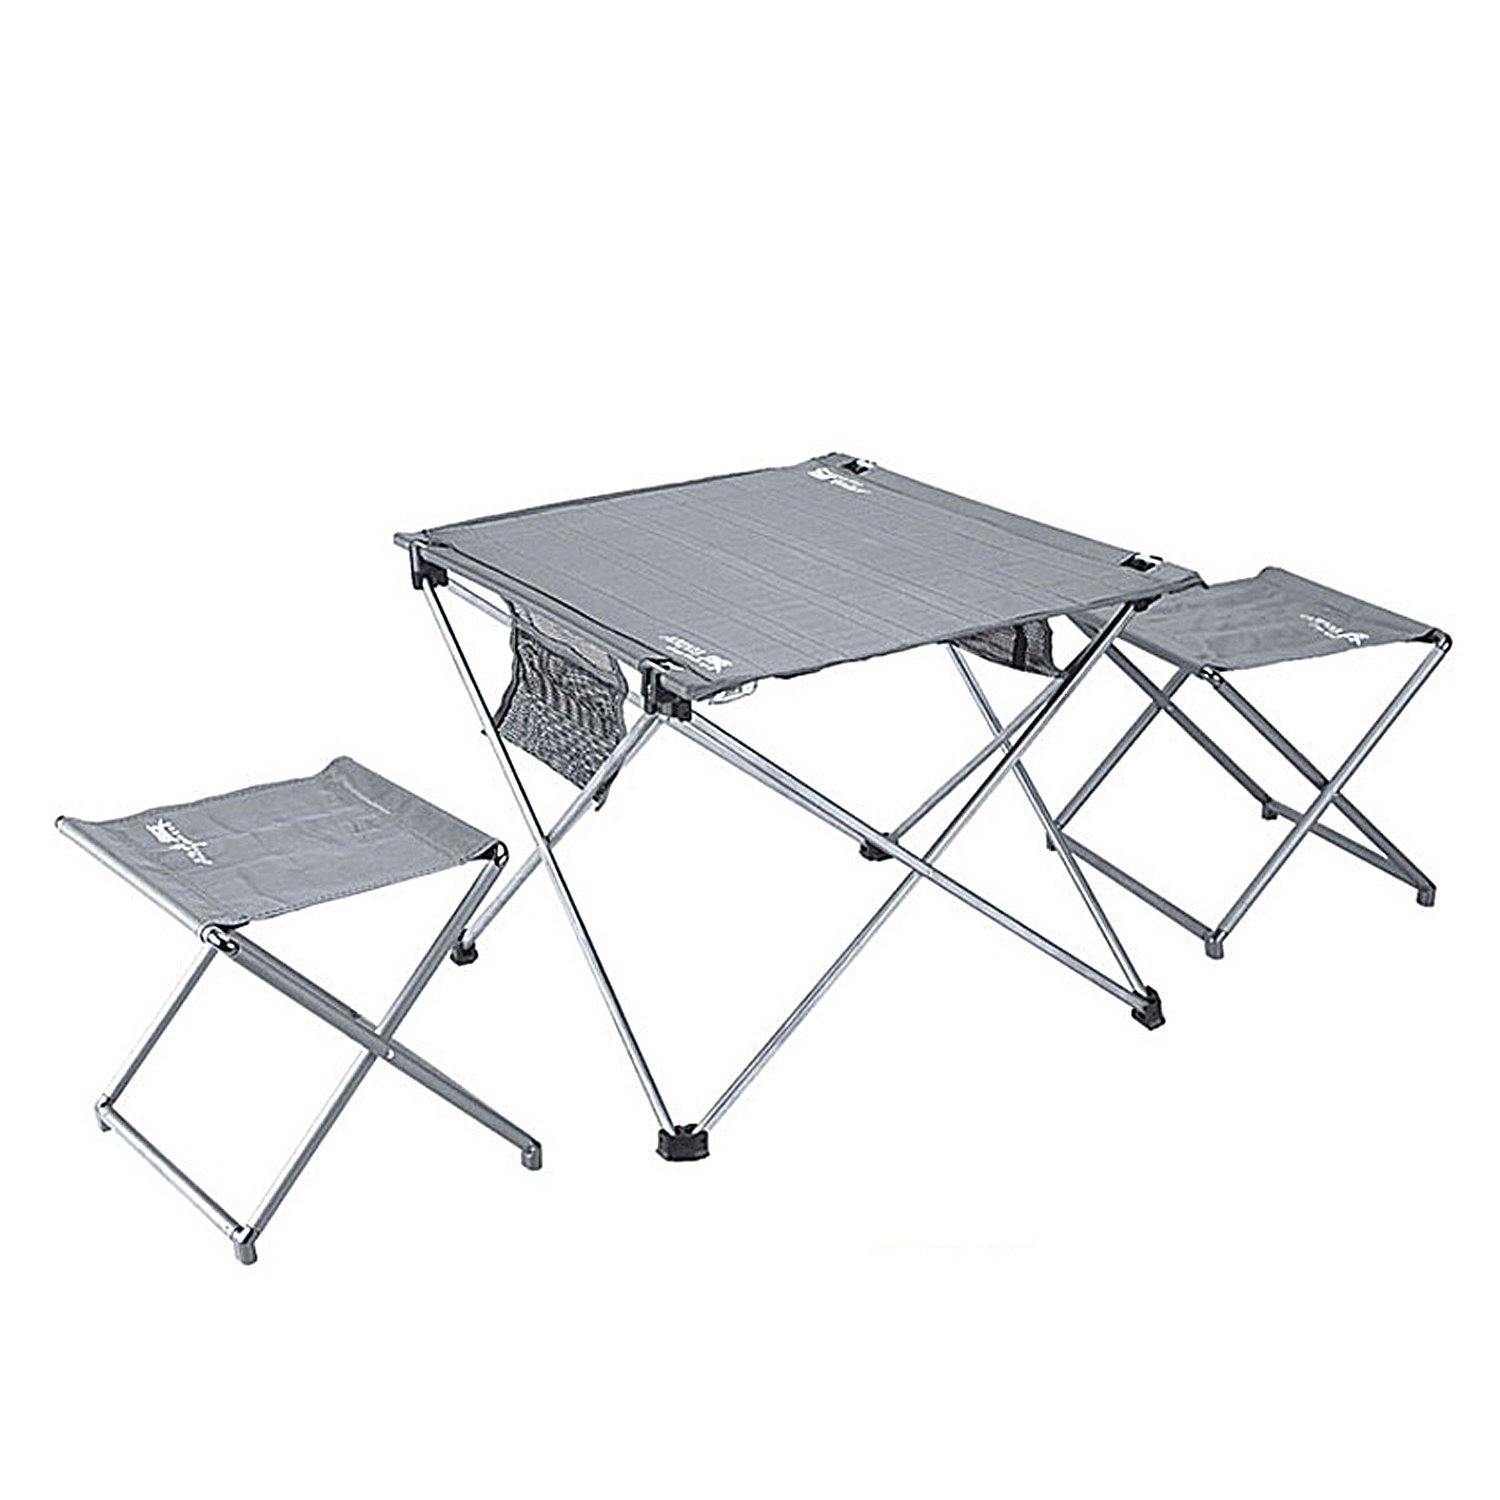 Lightweight Folding Table and Stools in a Carrying Bag-Pretty Handy- Aluminum Portable Table & Stools, Foldable Outdoor Table Stools for Camping, Beach, Picnic, Patio, Fishing, Indoo